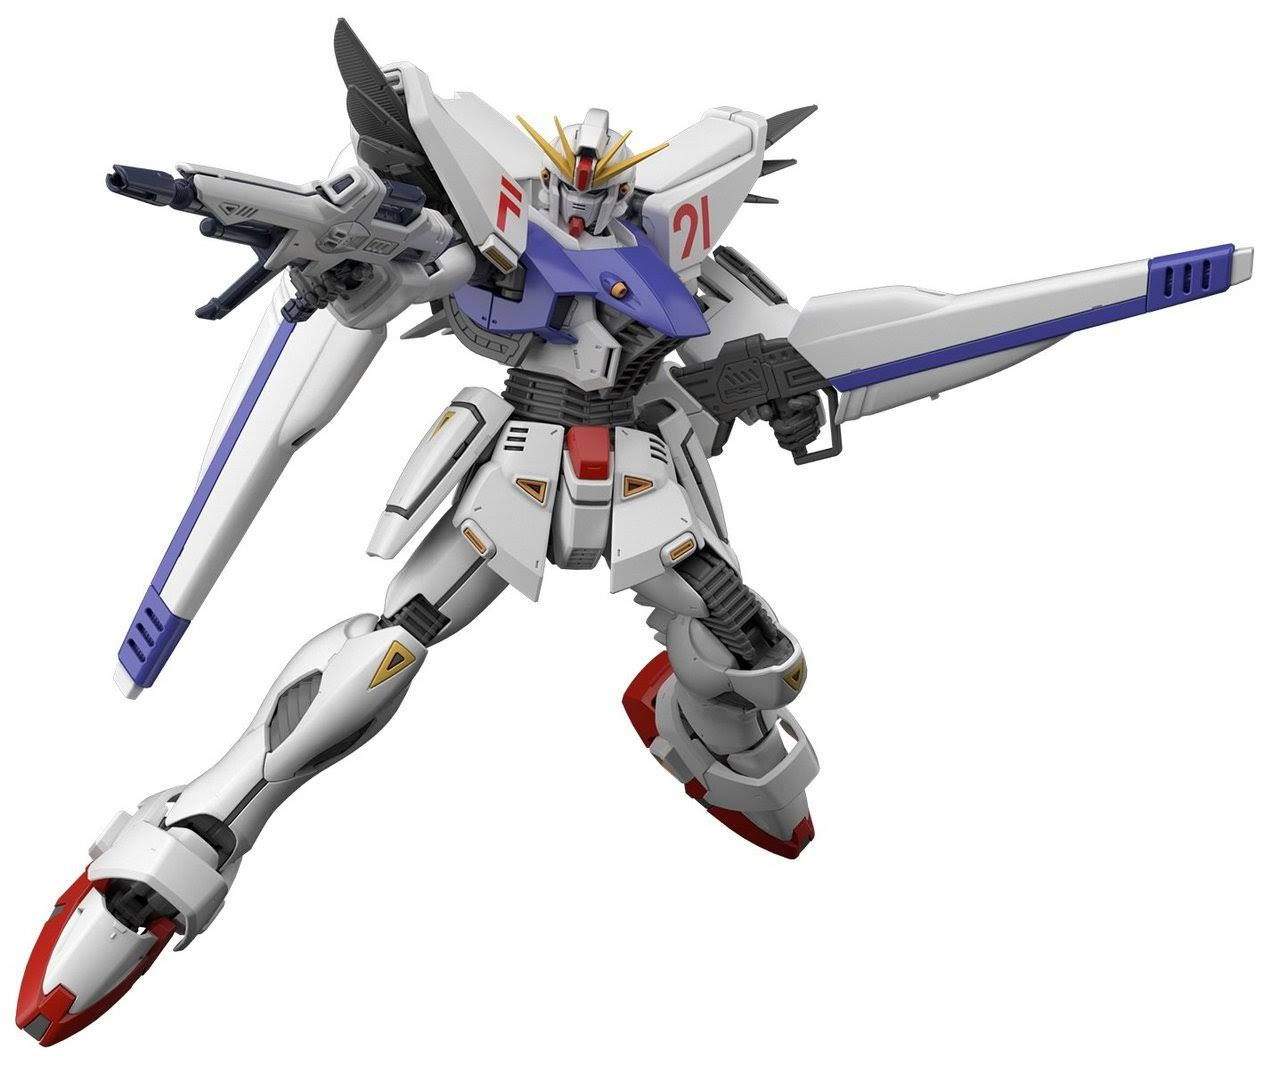 Bandai MG Gundam F91 Model Kit - Scale 1:100